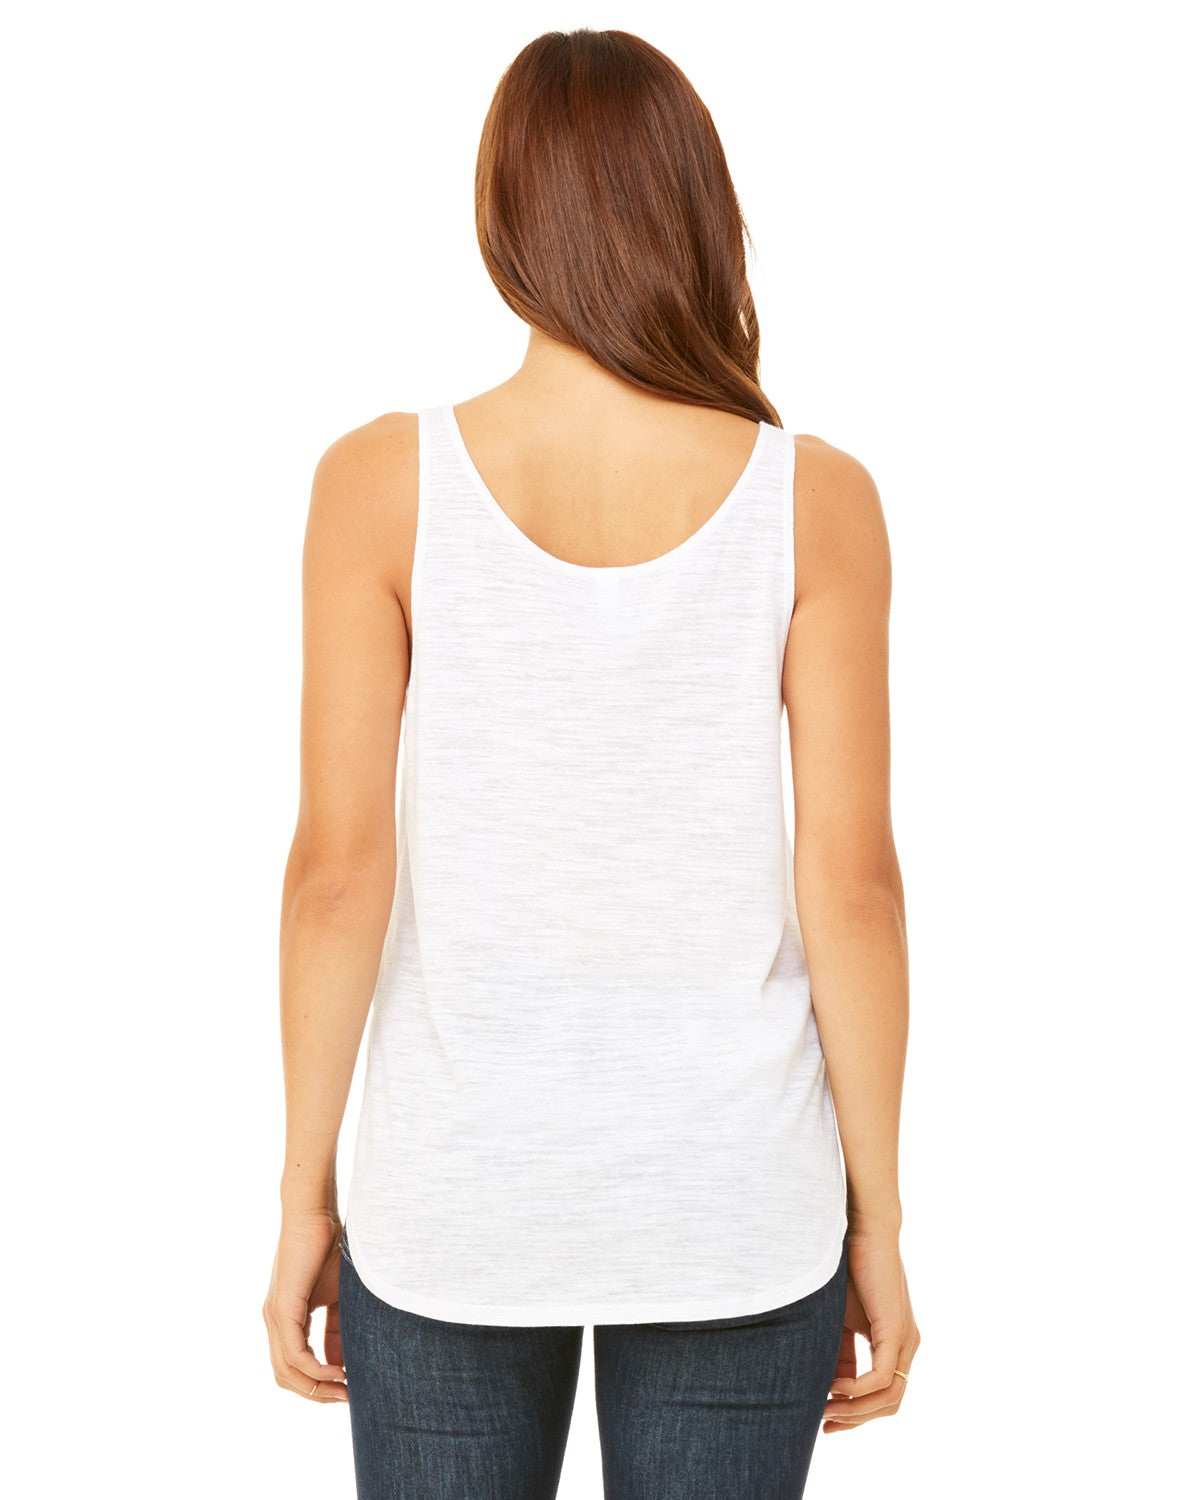 Every Day Is Another Chance Sun Women's Side Split Flowy Tank